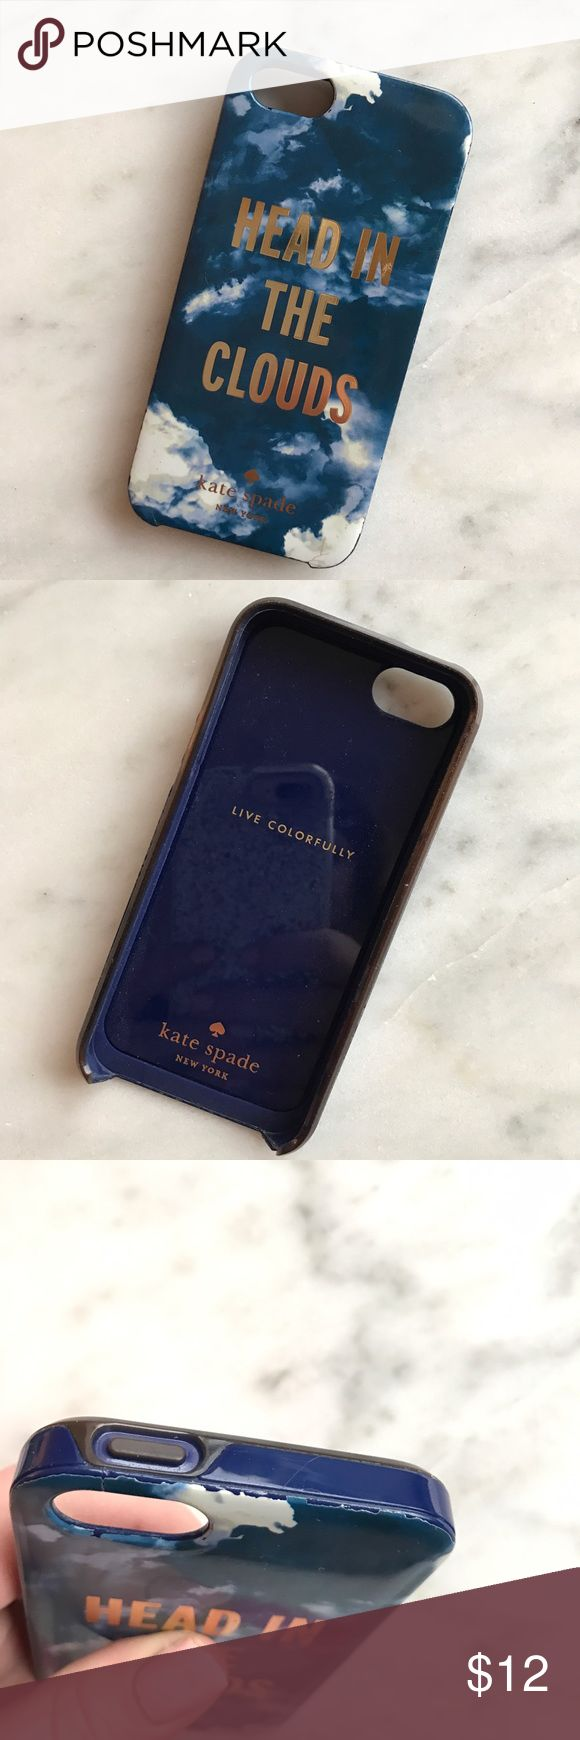 Kate Spade Head in the Clouds iPhone 5/5s Case Used, but excellent condition! Some edges are worn (shown in pictures) and the front bumper is a darker color. Need more pictures? Please just ask! 😊☁️ kate spade Accessories Phone Cases